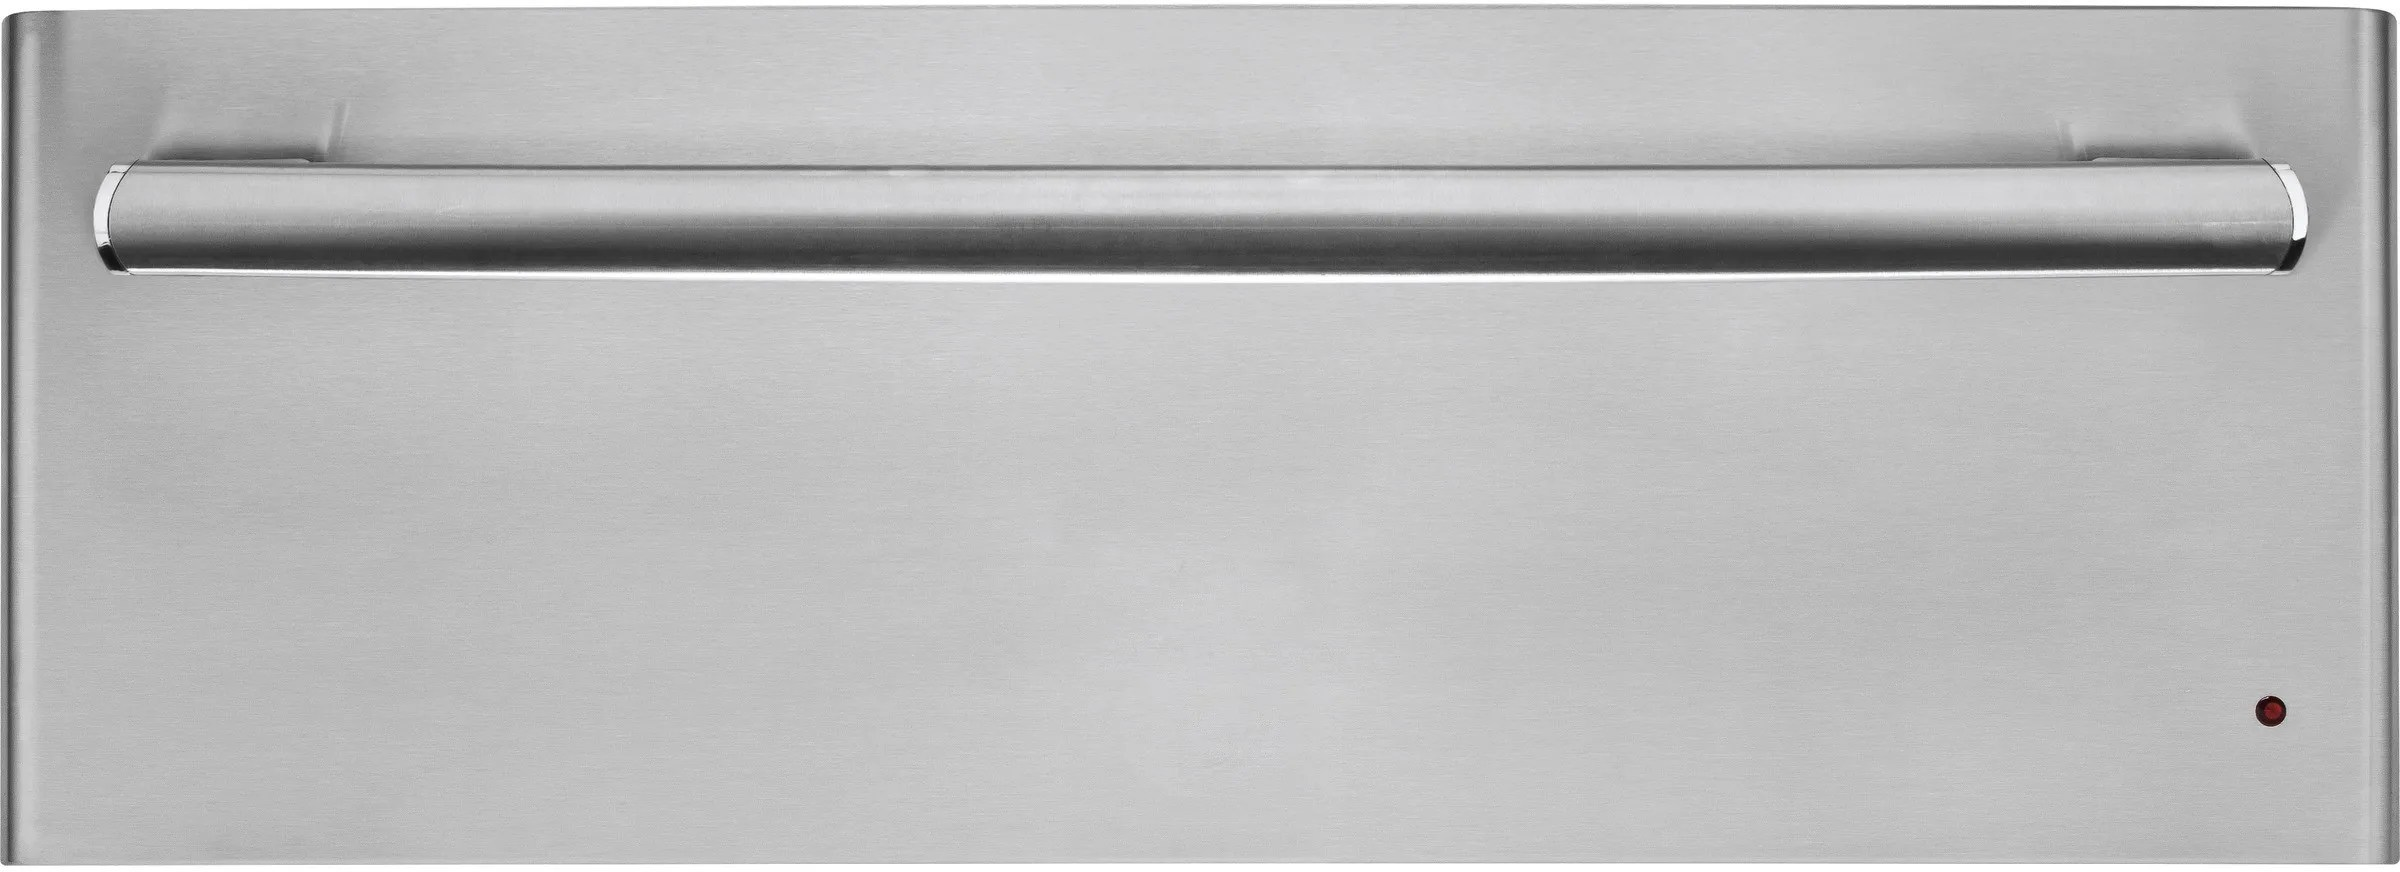 Countertop Warming Drawer Ge Pw9000sfss 30 Inch Warming Drawer With 1 9 Cu Ft